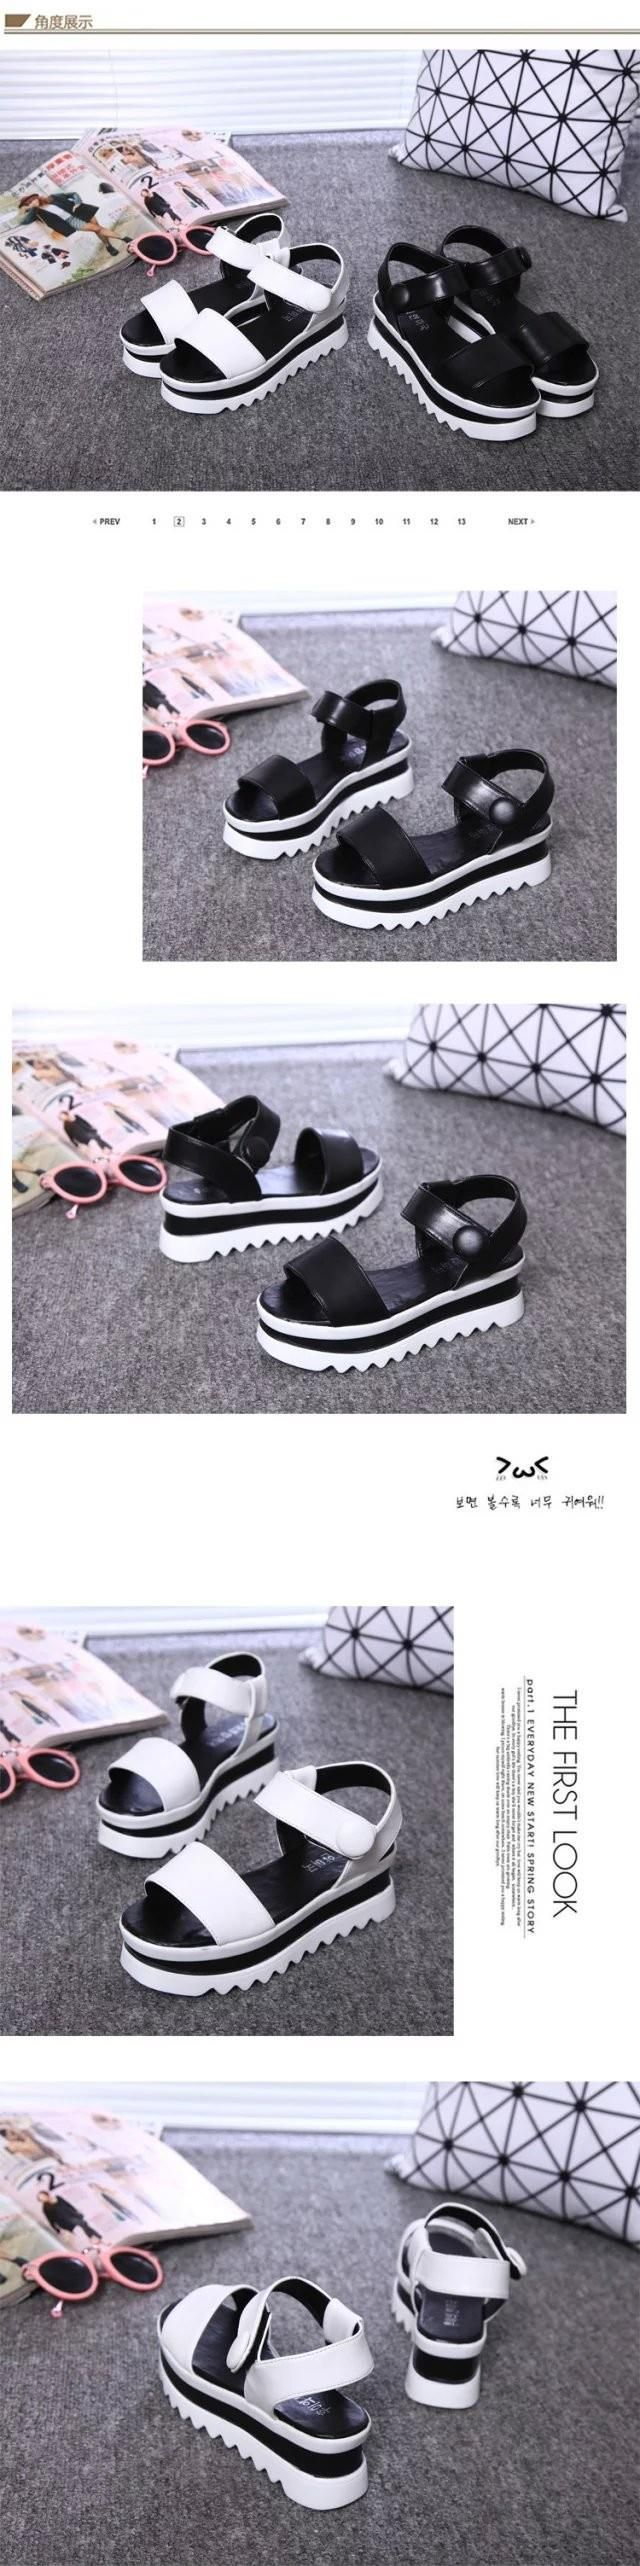 VISIT --> http://playertronics.com/products/new-2016-pu-leather-gladiator-sandals-women-fashion-platform-sandals-summer-shoes-woman-slippers-free-shipping-2/ http://playertronics.com/products/new-2016-pu-leather-gladiator-sandals-women-fashion-platform-sandals-summer-shoes-woman-slippers-free-shipping-2/